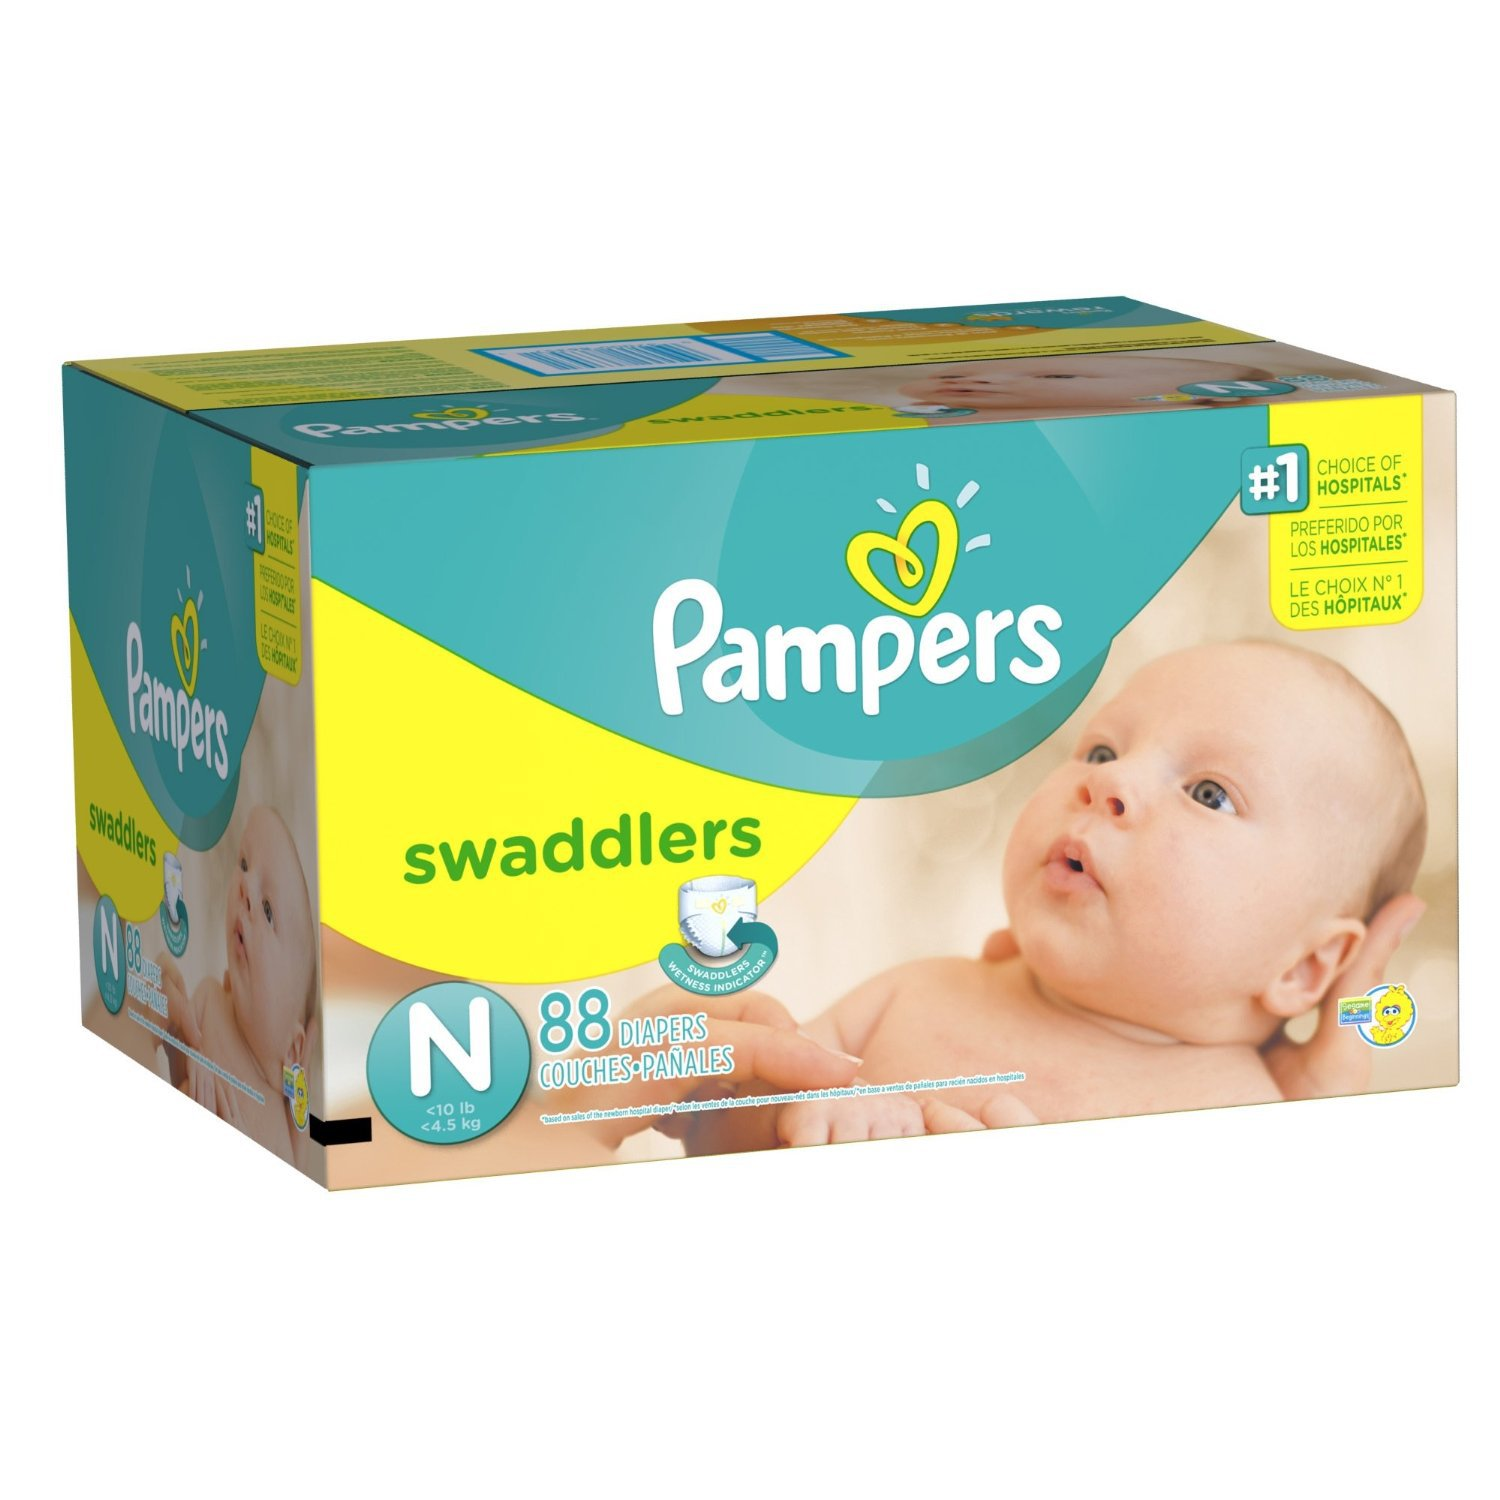 Pampers Swaddlers Diapers Size Newborn - 88 Count (FREE ...